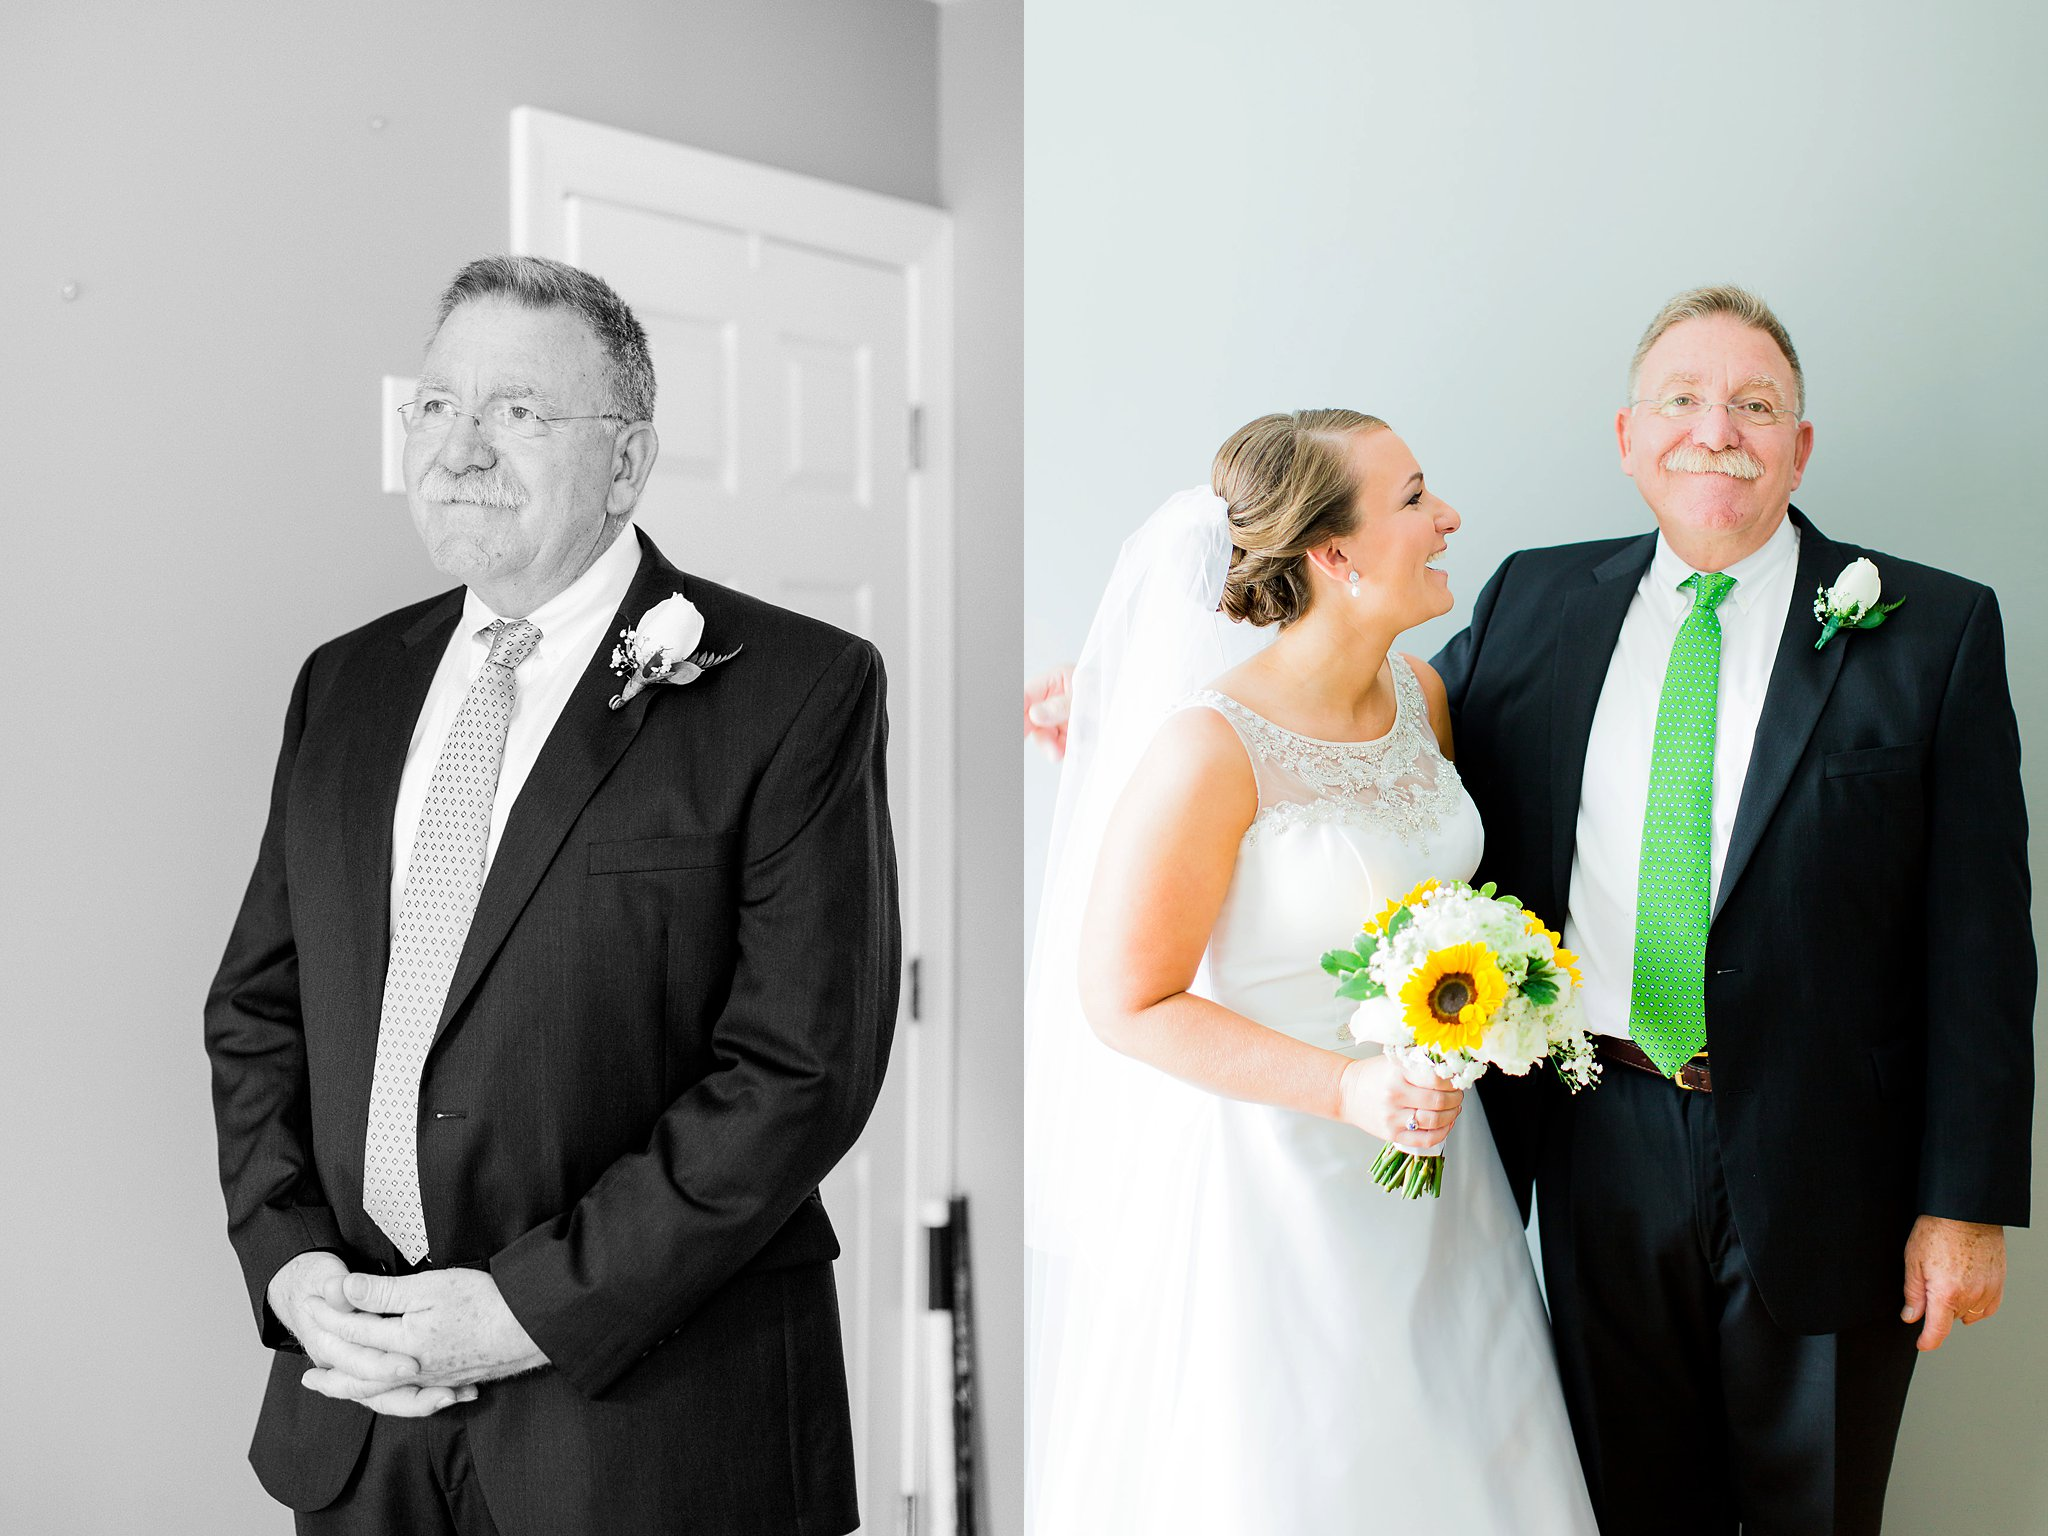 Historic Tredegar Wedding Richmond Wedding Photographer Maggie & Alan Megan Kelsey Photography-55.jpg